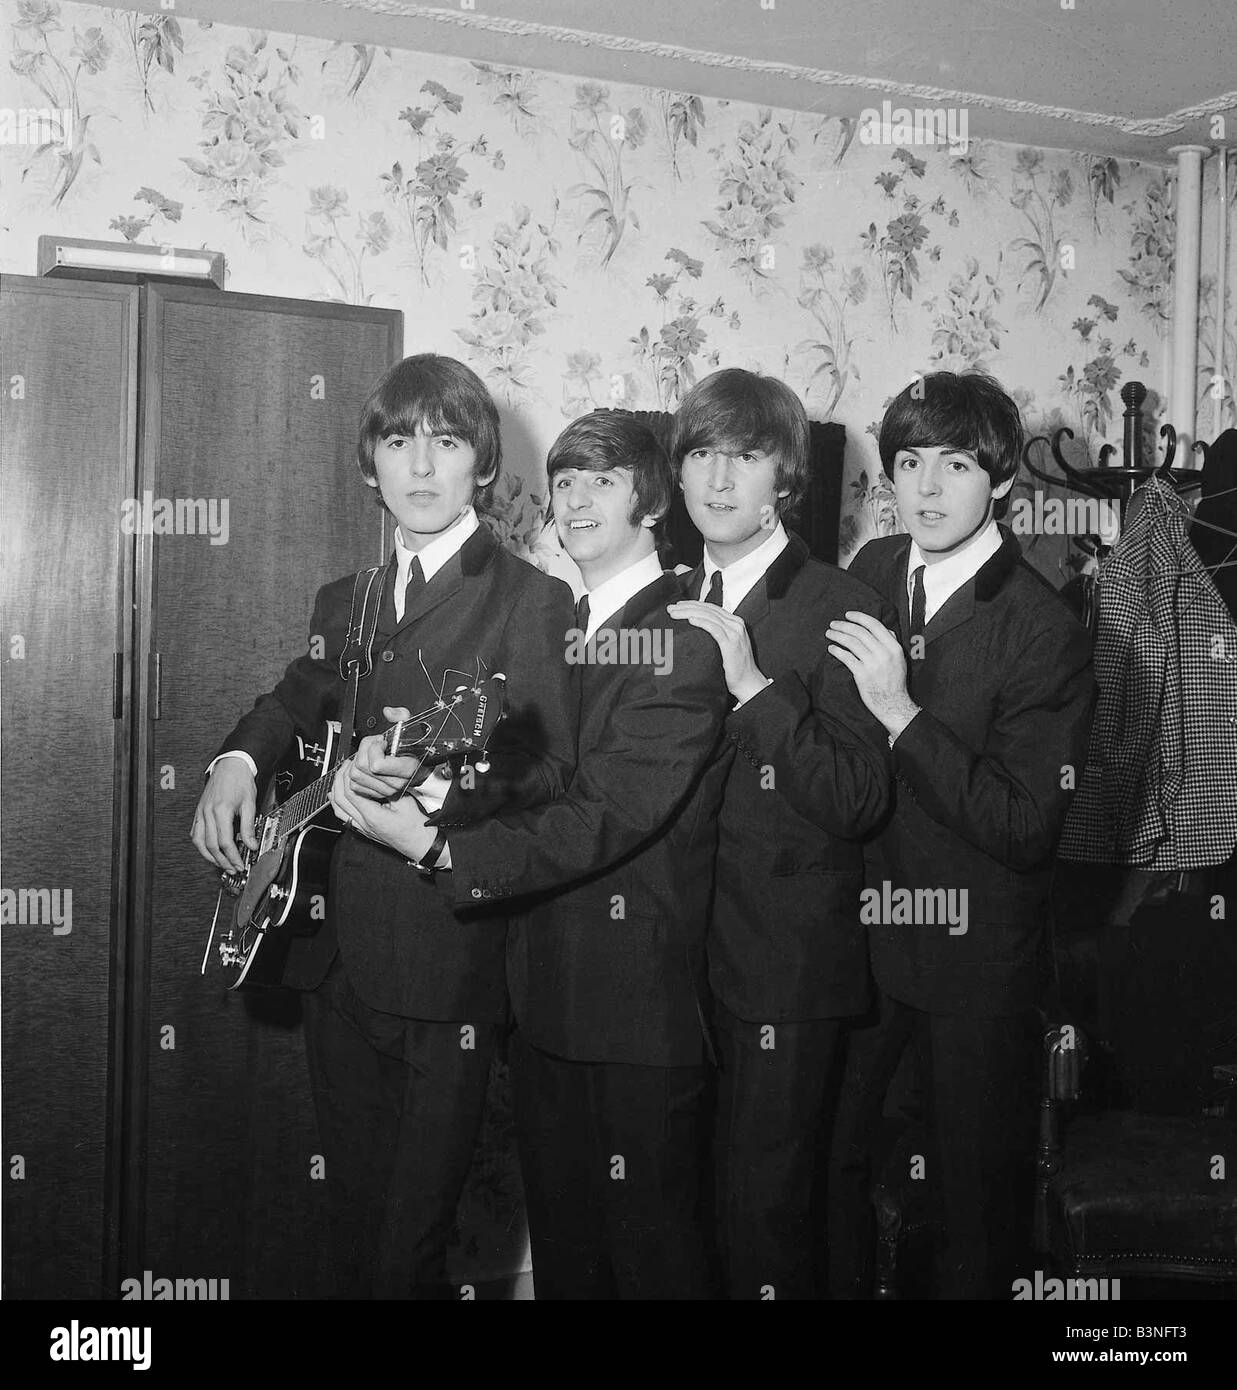 Beatles Files 1964 John Lennon Ringo Starr Paul McCartney George Harrison in their dressing room of the De Monfort Stock Photo